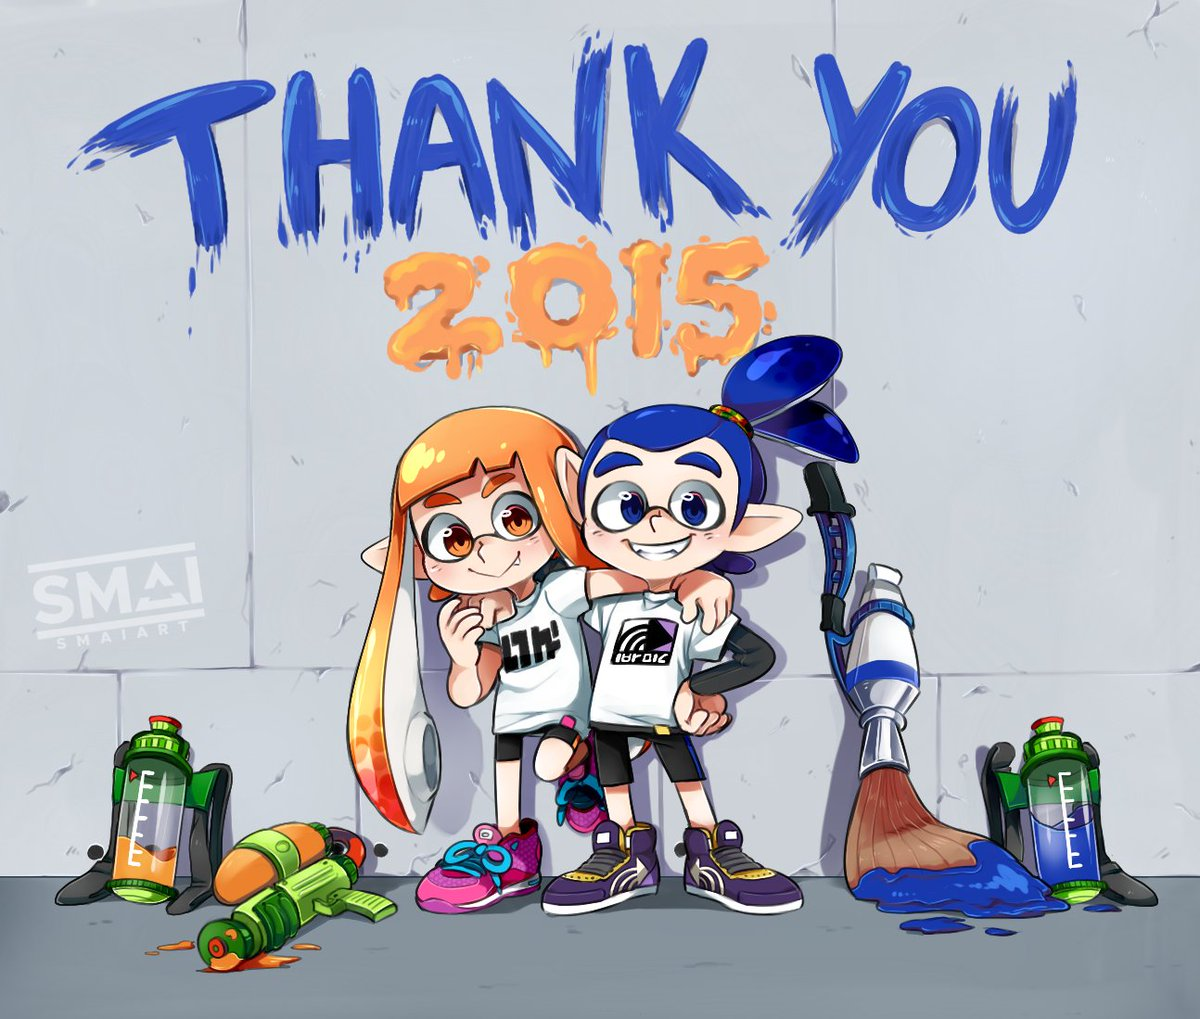 Everyone's sharing old artwork from the good ol' Sploon1 days, here's some of my faves from back then!🦑💙